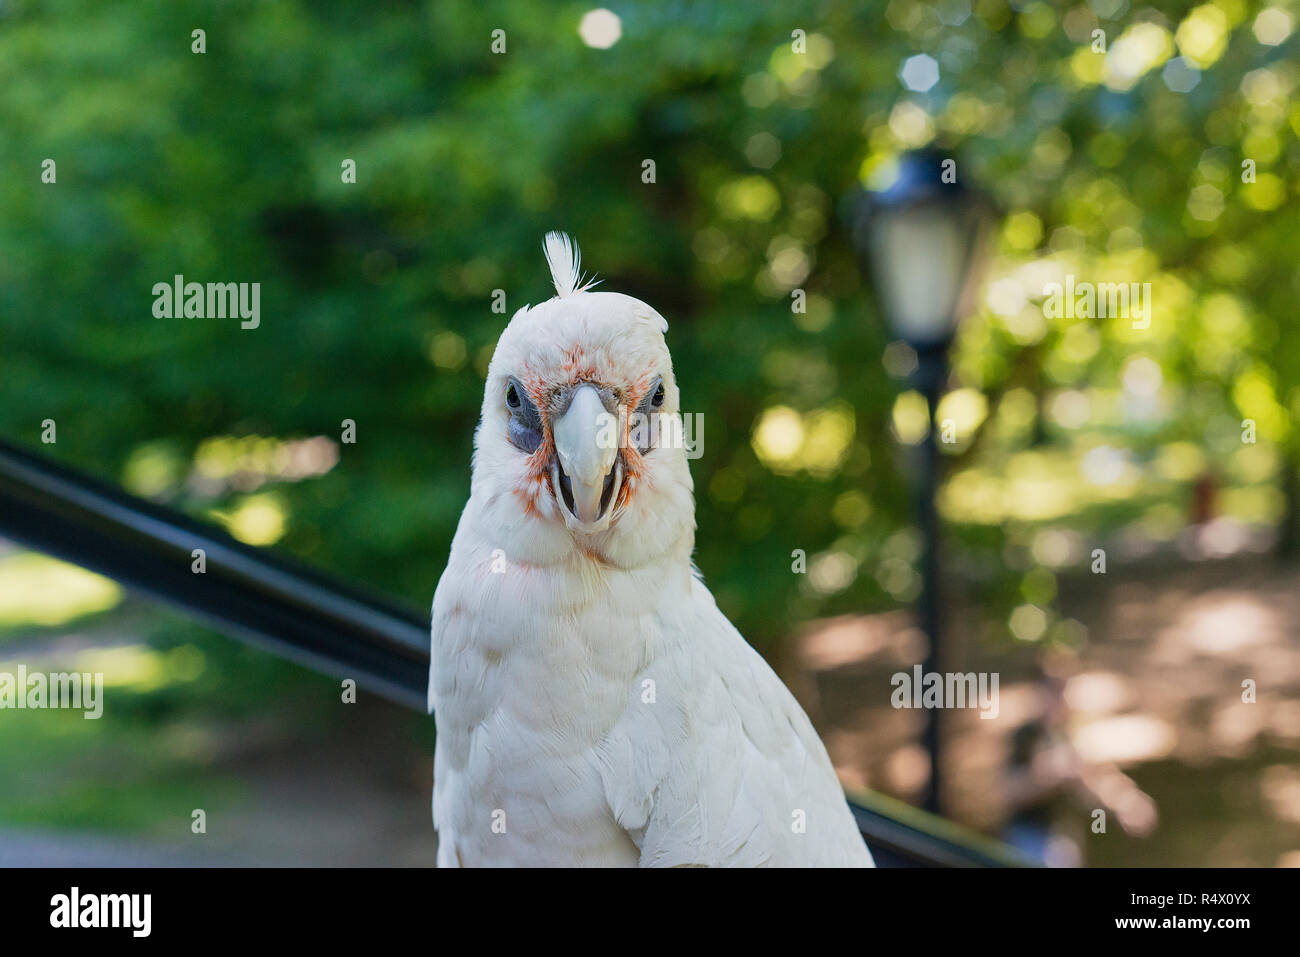 A Bare Eyed Cockatoo looking at the camera. - Stock Image